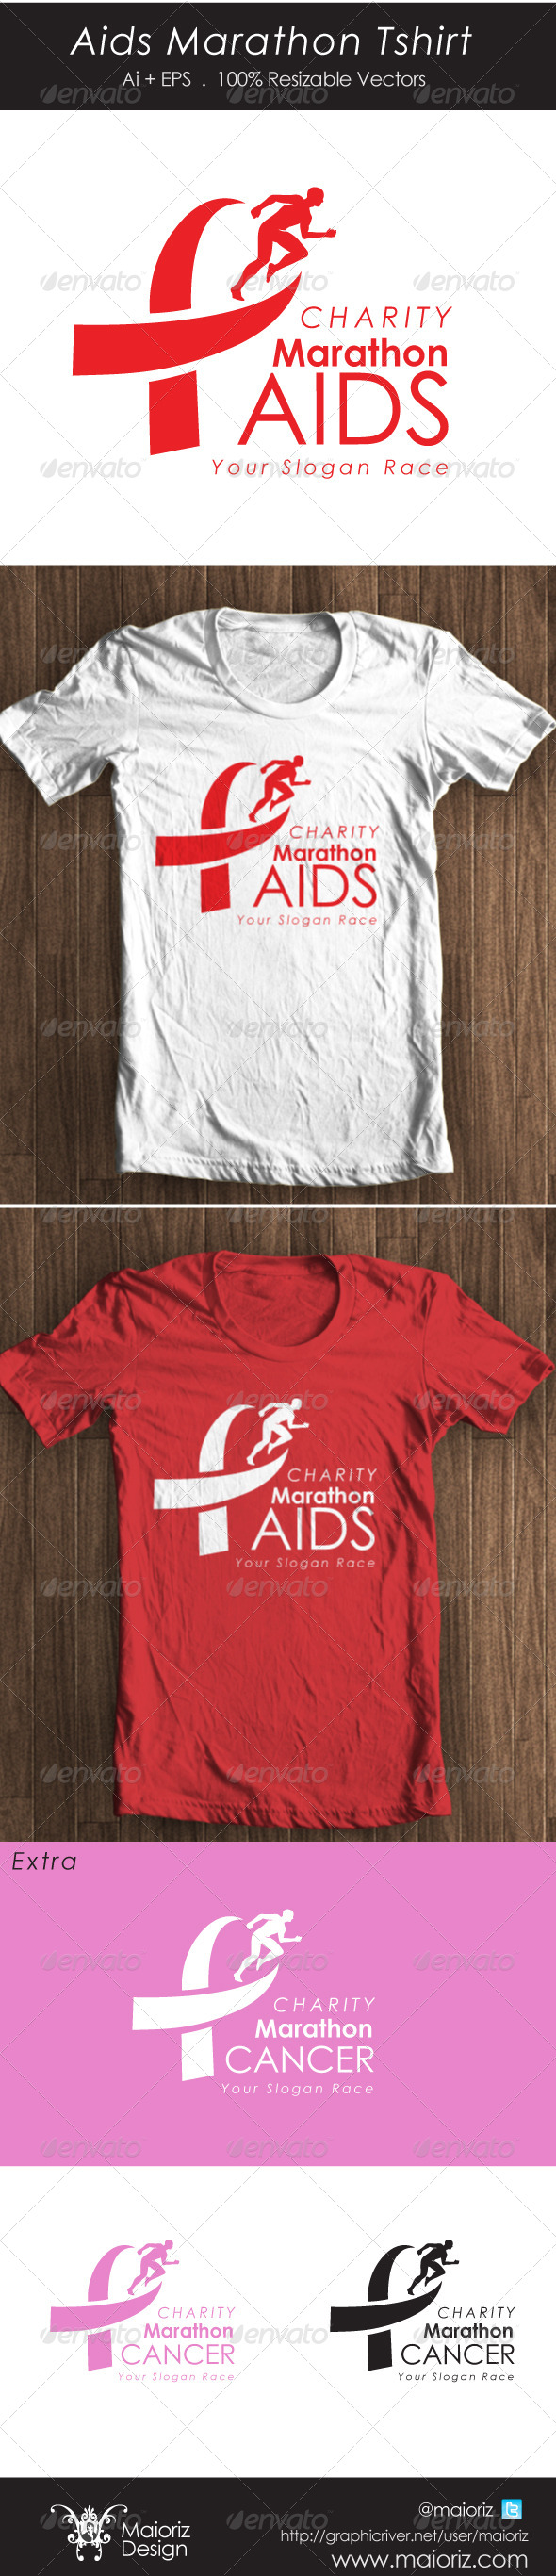 Aids Marathon Tshirt - Sports & Teams T-Shirts